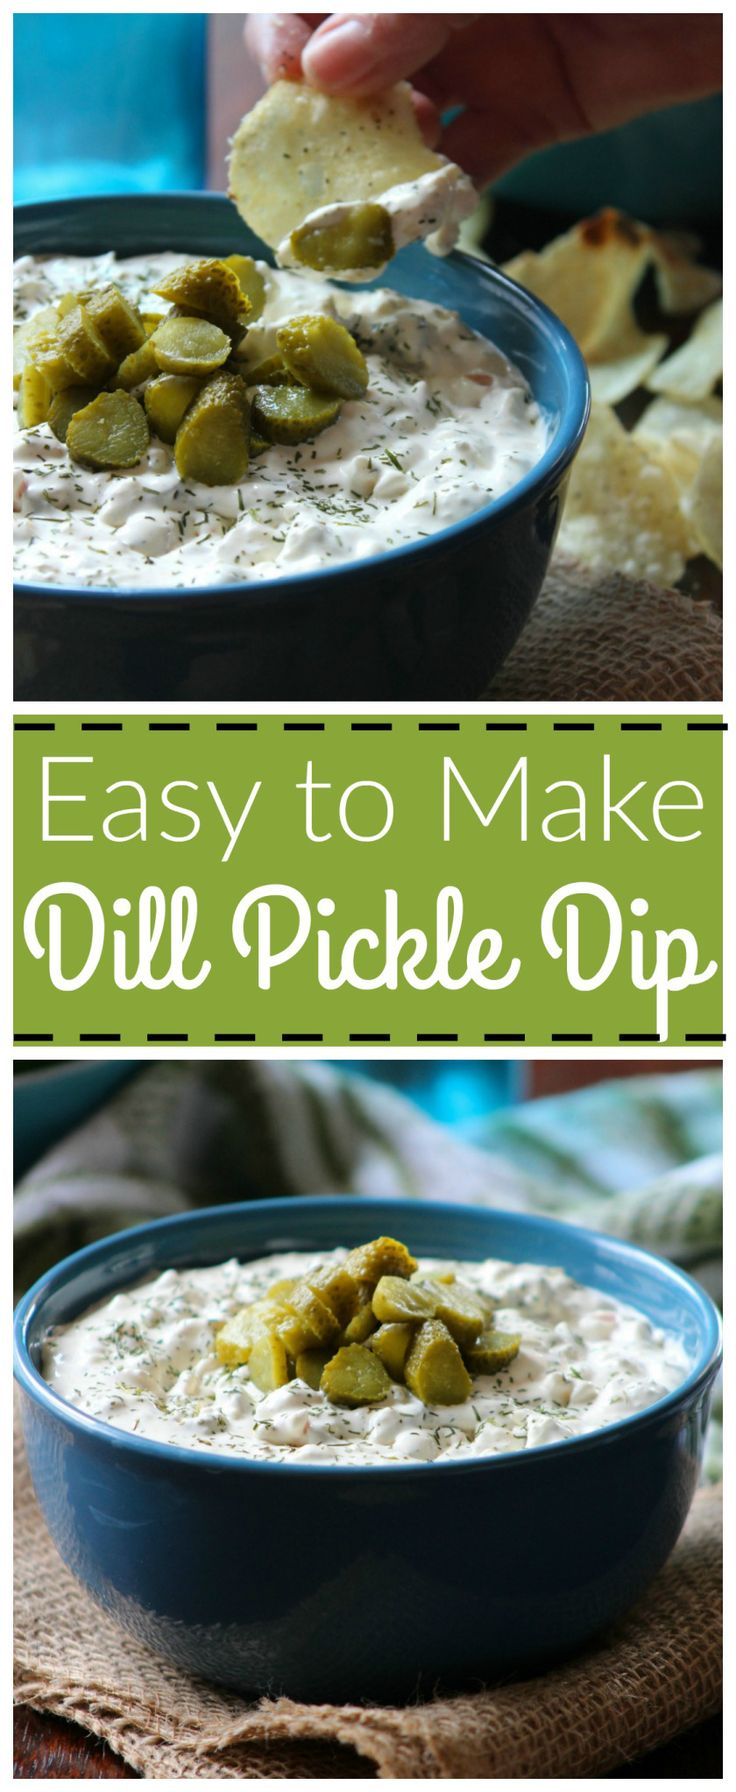 Mention Dill Pickle Dip to me and I will proclaim to you, it to be, What dreams are made of on a warm spring day here in Mississippi. It's that deliciously simple to make dip we love to serve…